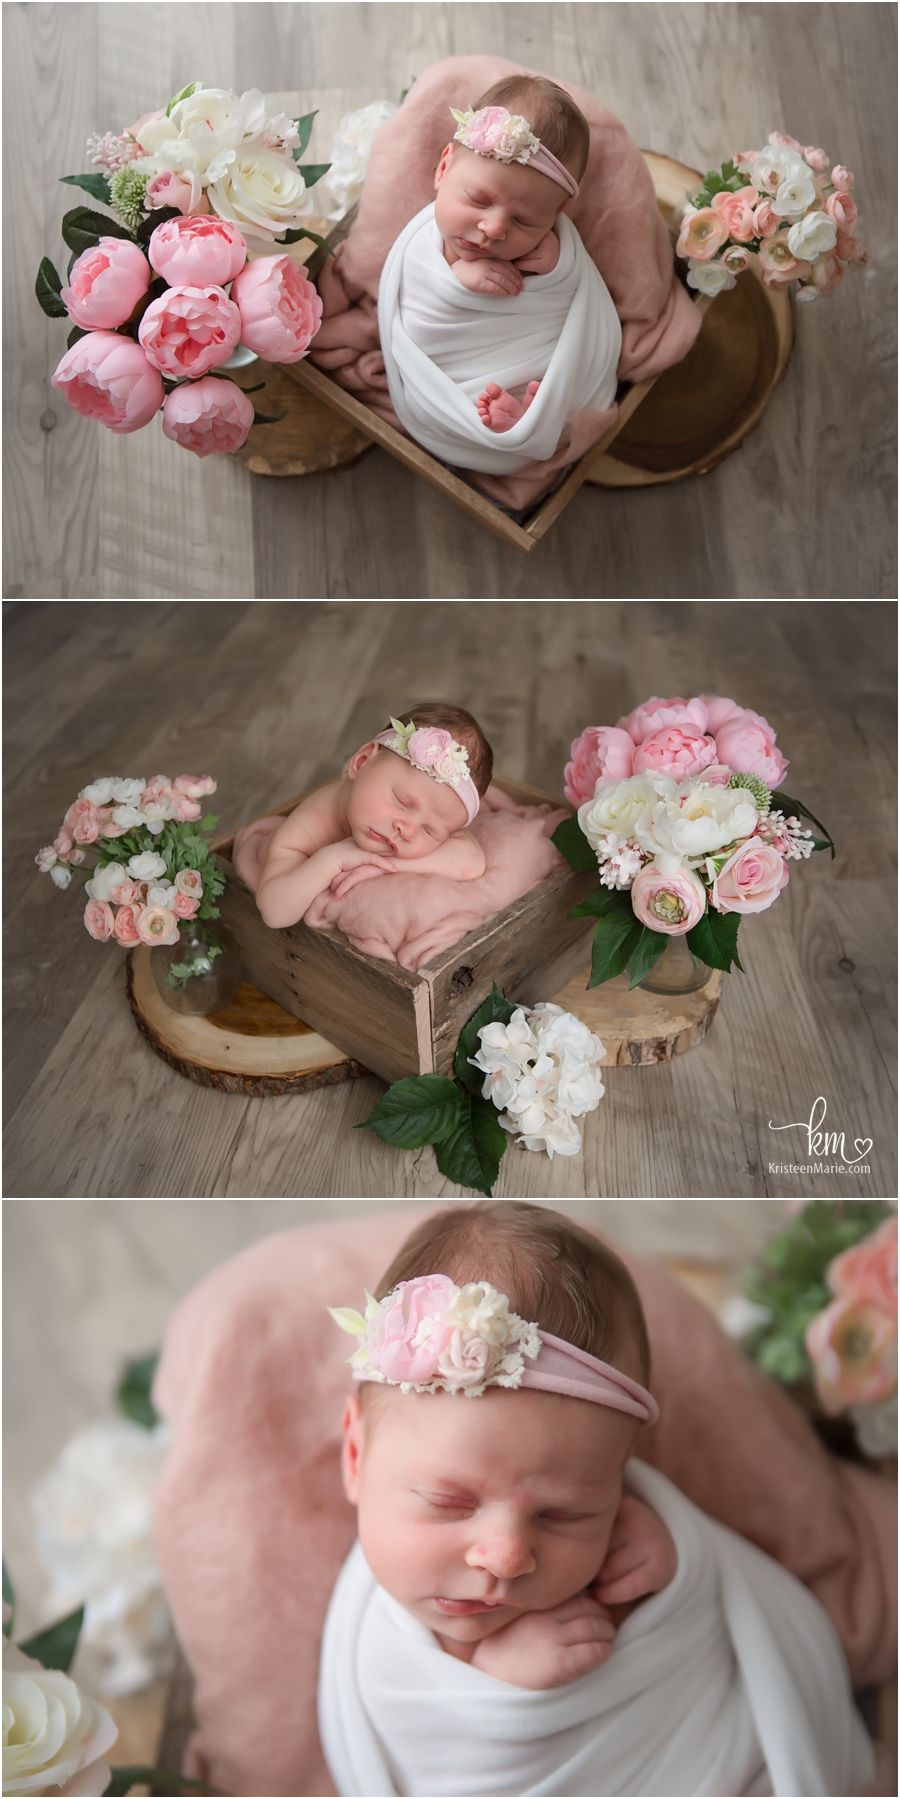 Indianapolis newborn photogrpahy with flowers newborn baby photos newborn shoot newborn poses newborn